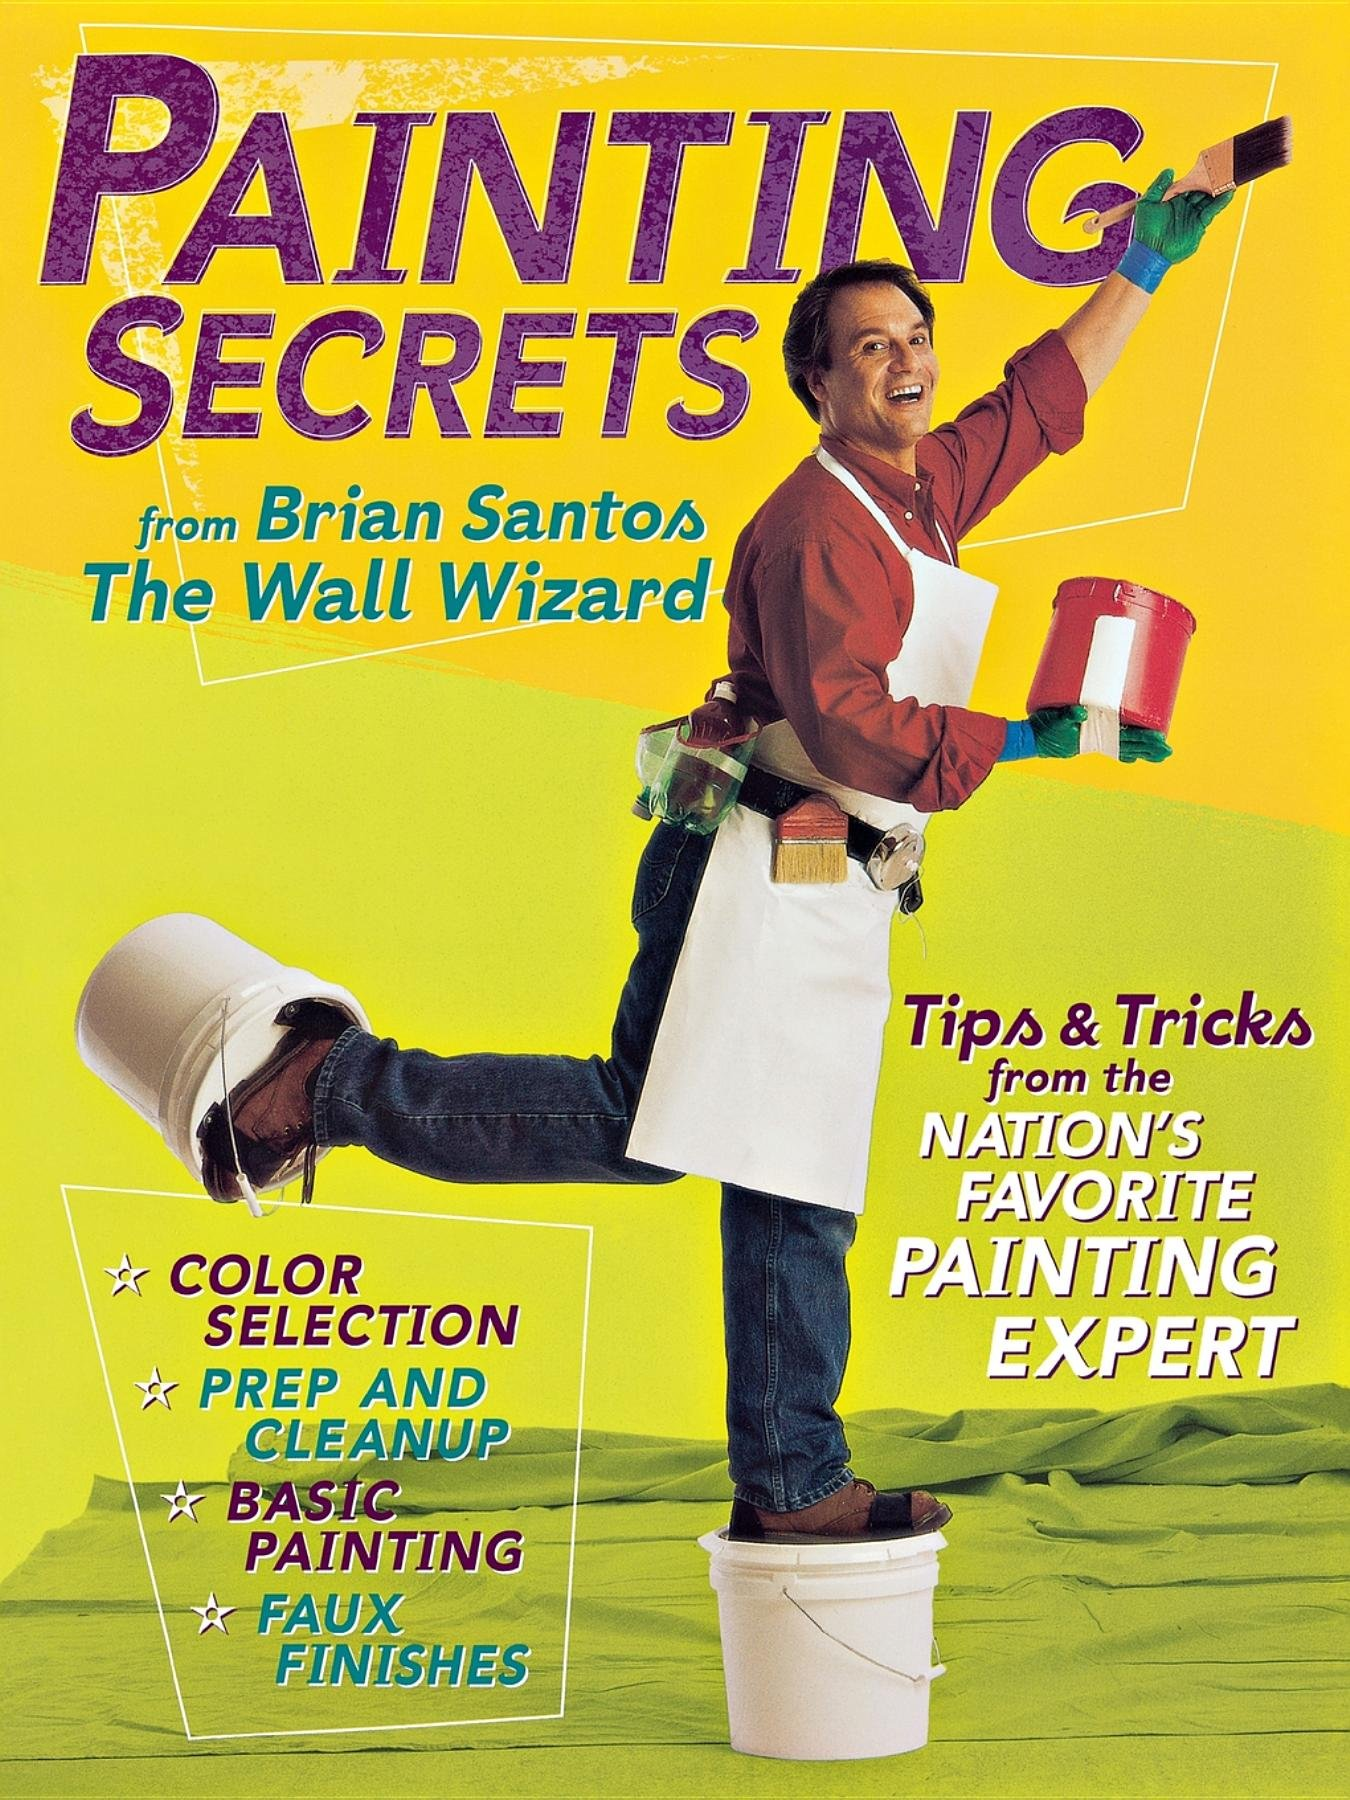 Painting Secrets: Tips & Tricks from the Nation's Favorite Painting Expert